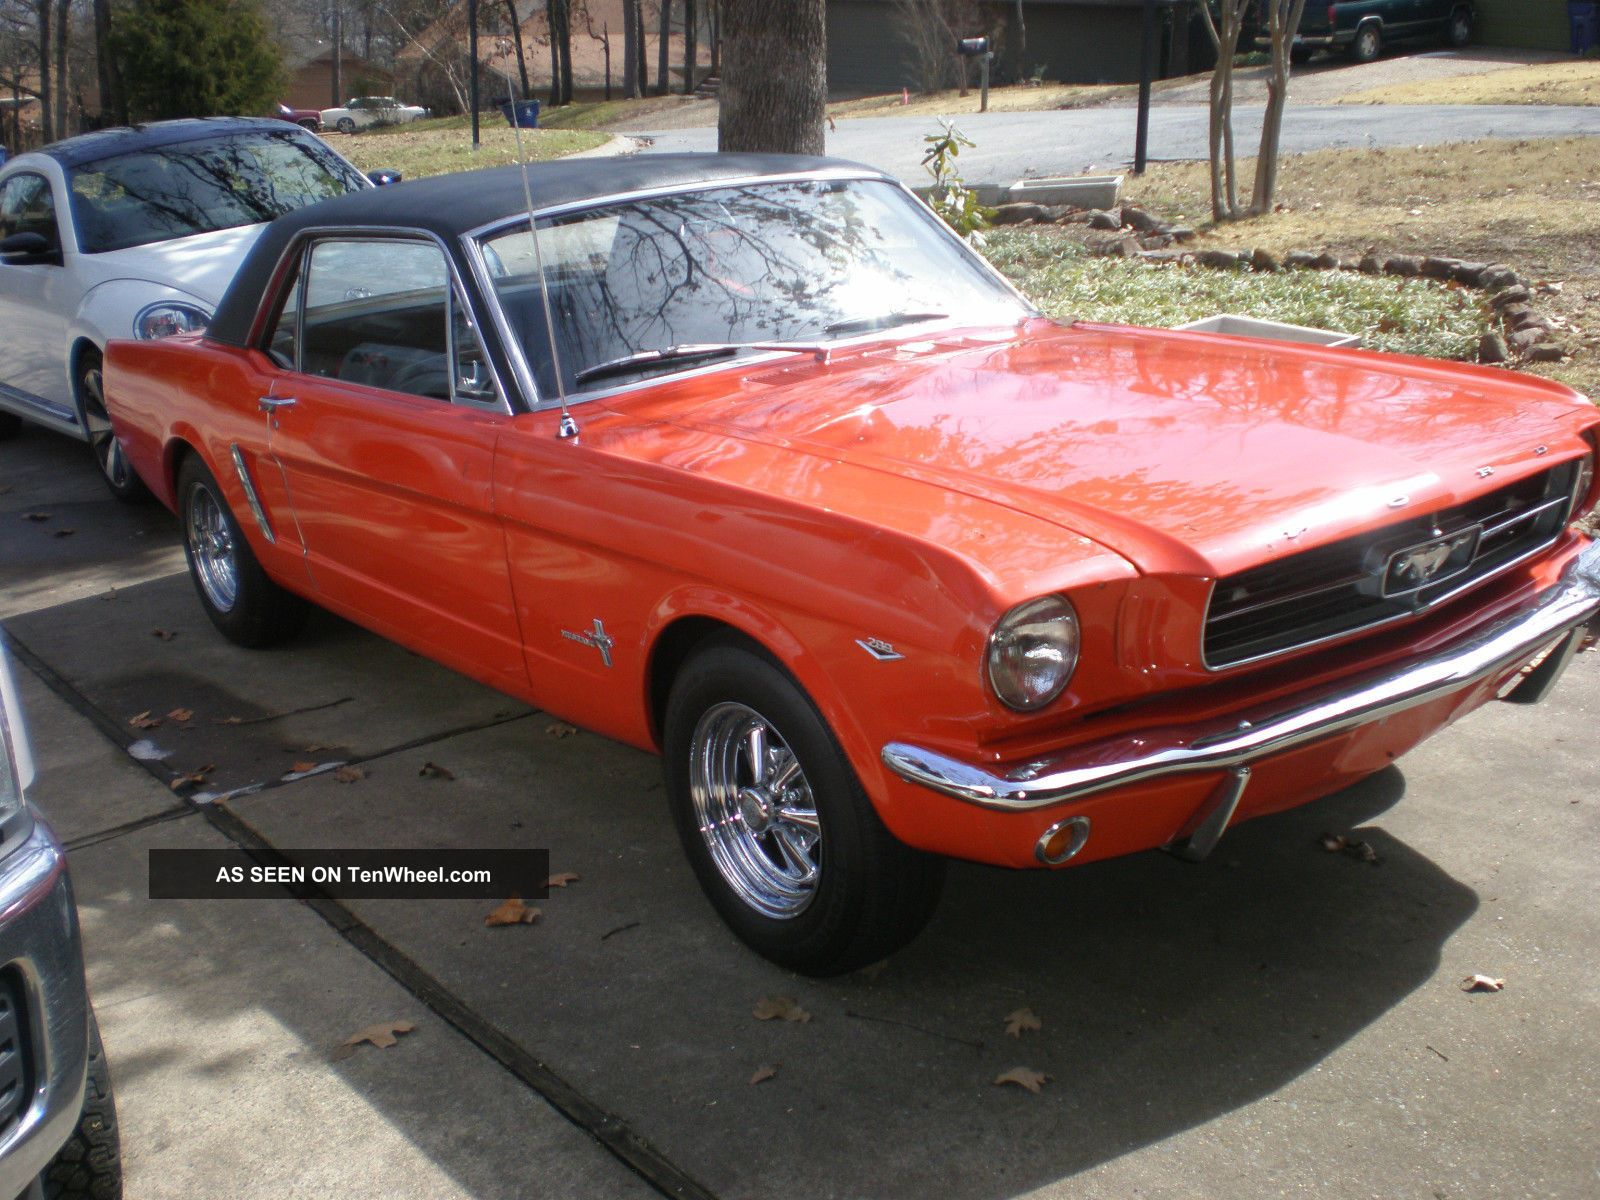 1965 Mustang 50th Anniversary Mustang photo